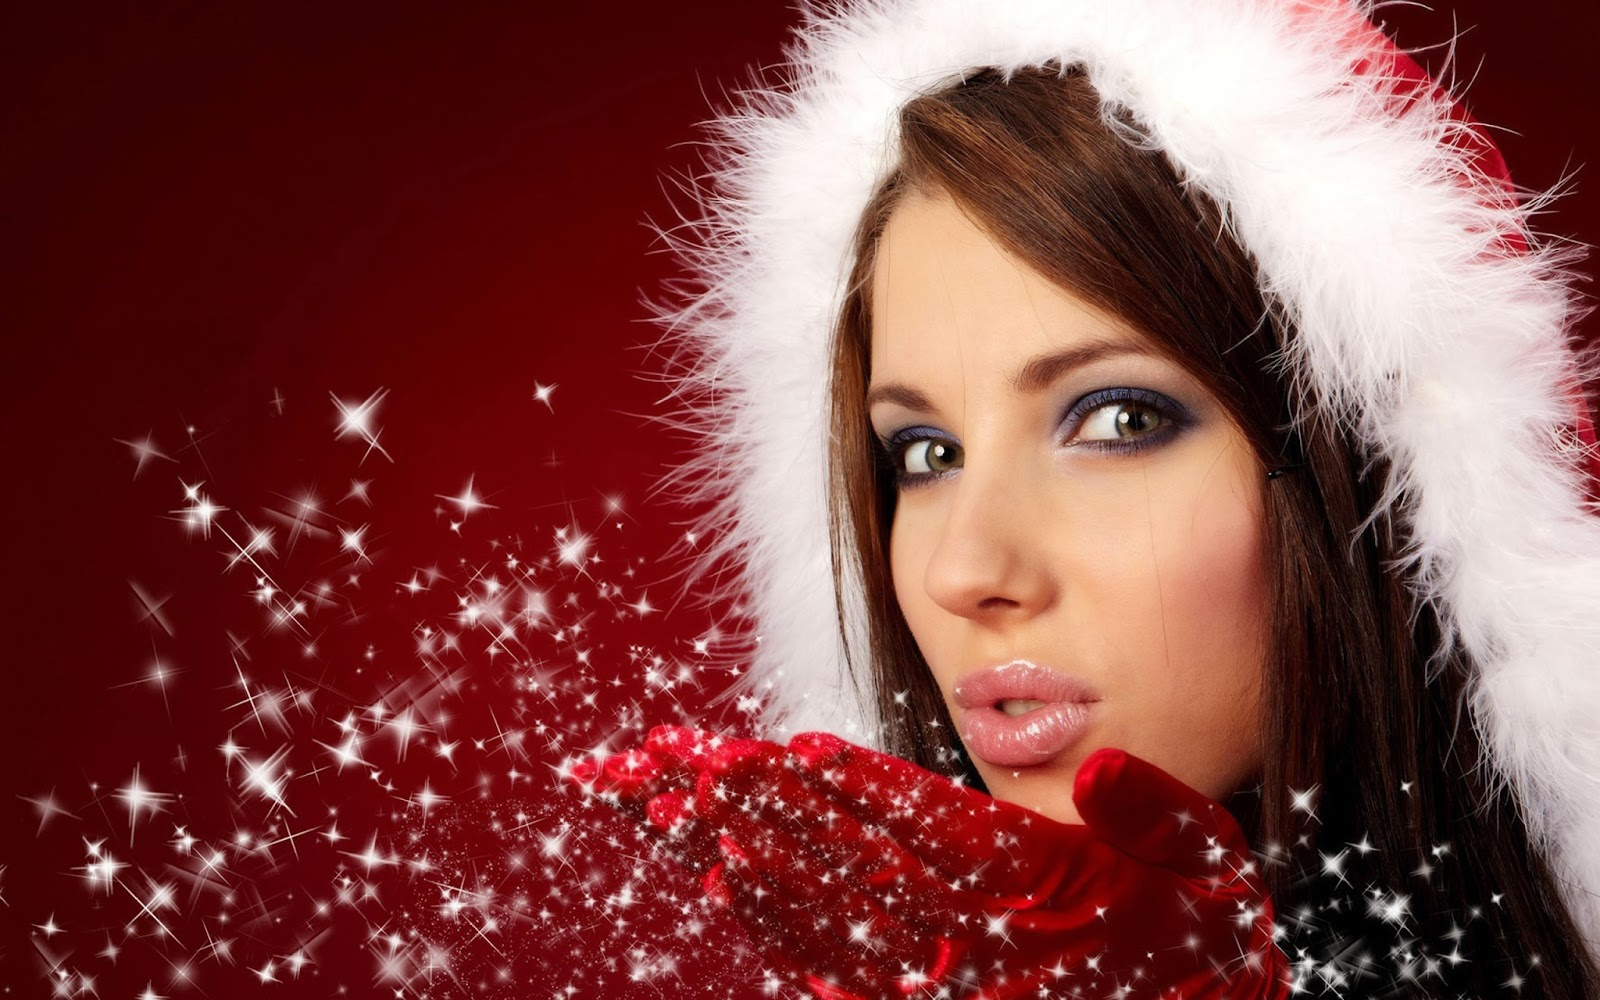 Sexy Christmas Girl Wallpaper